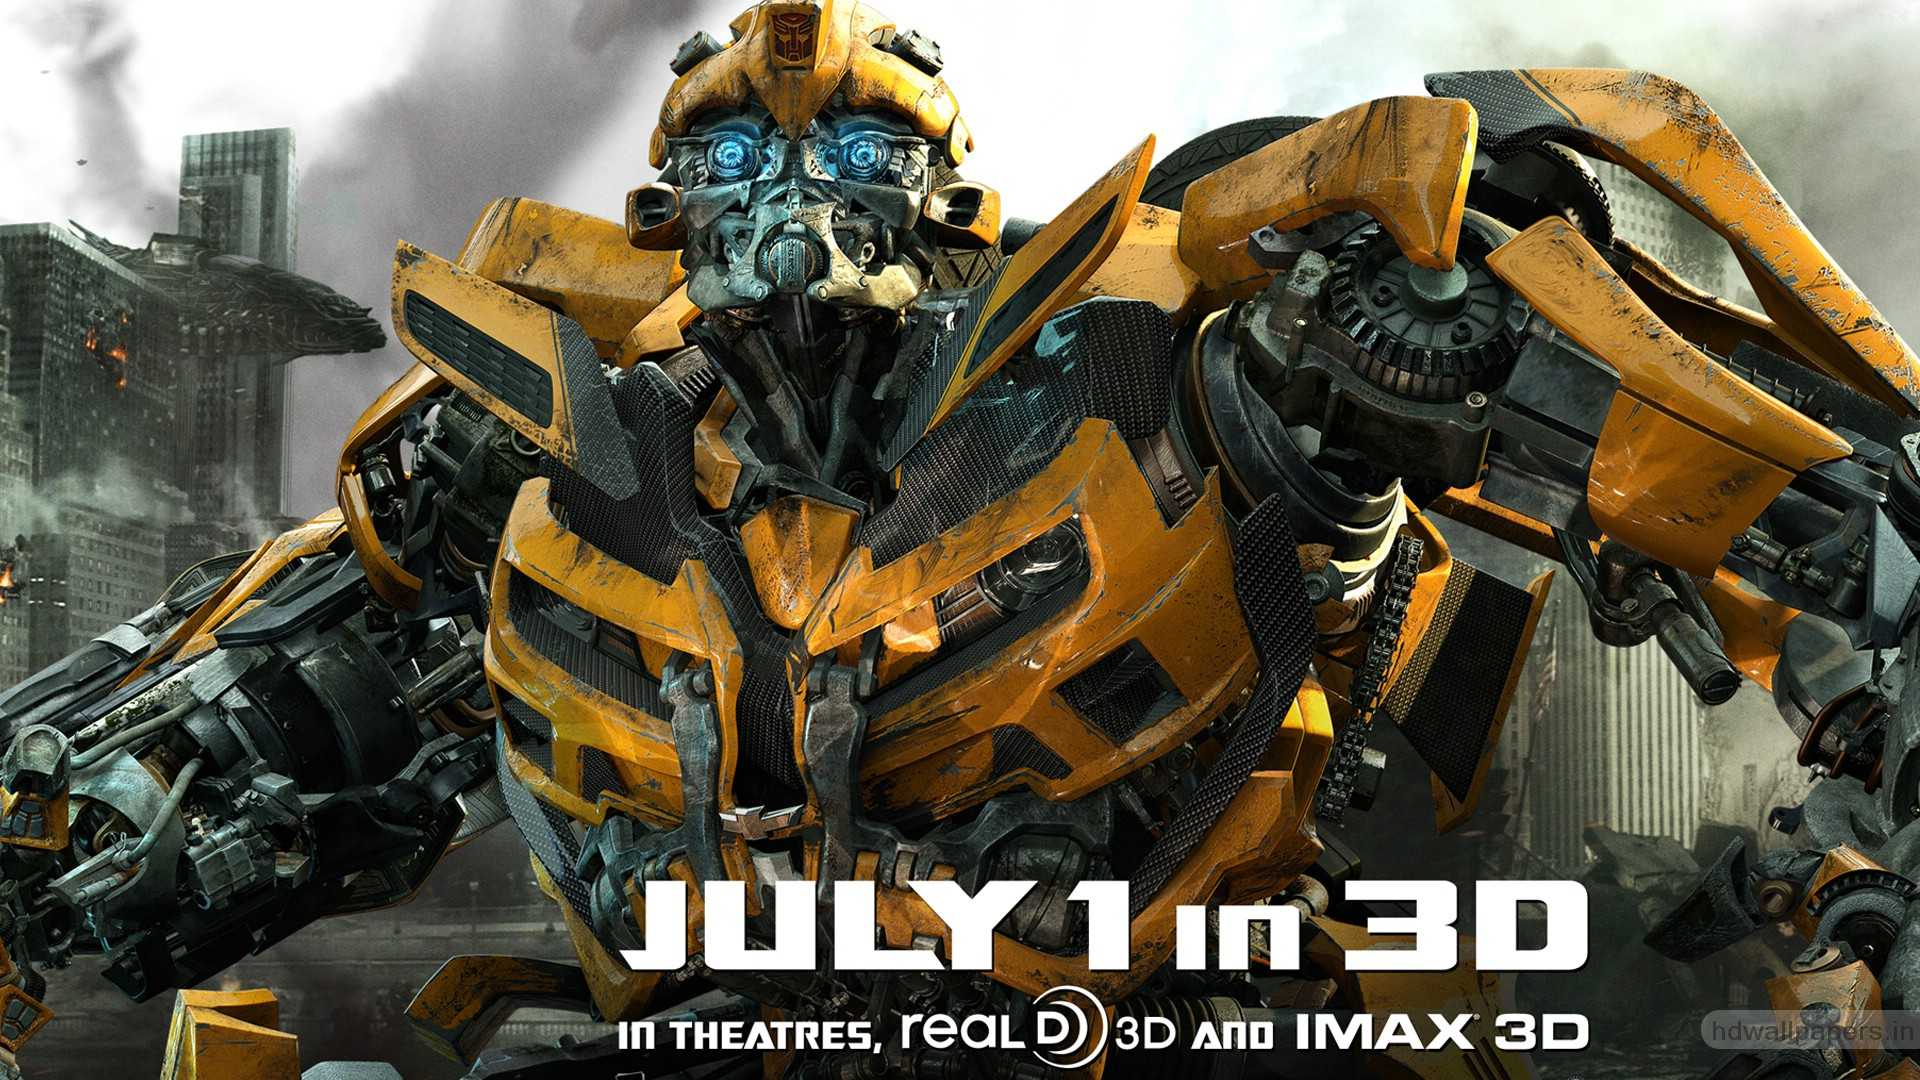 Bumblebee in New...